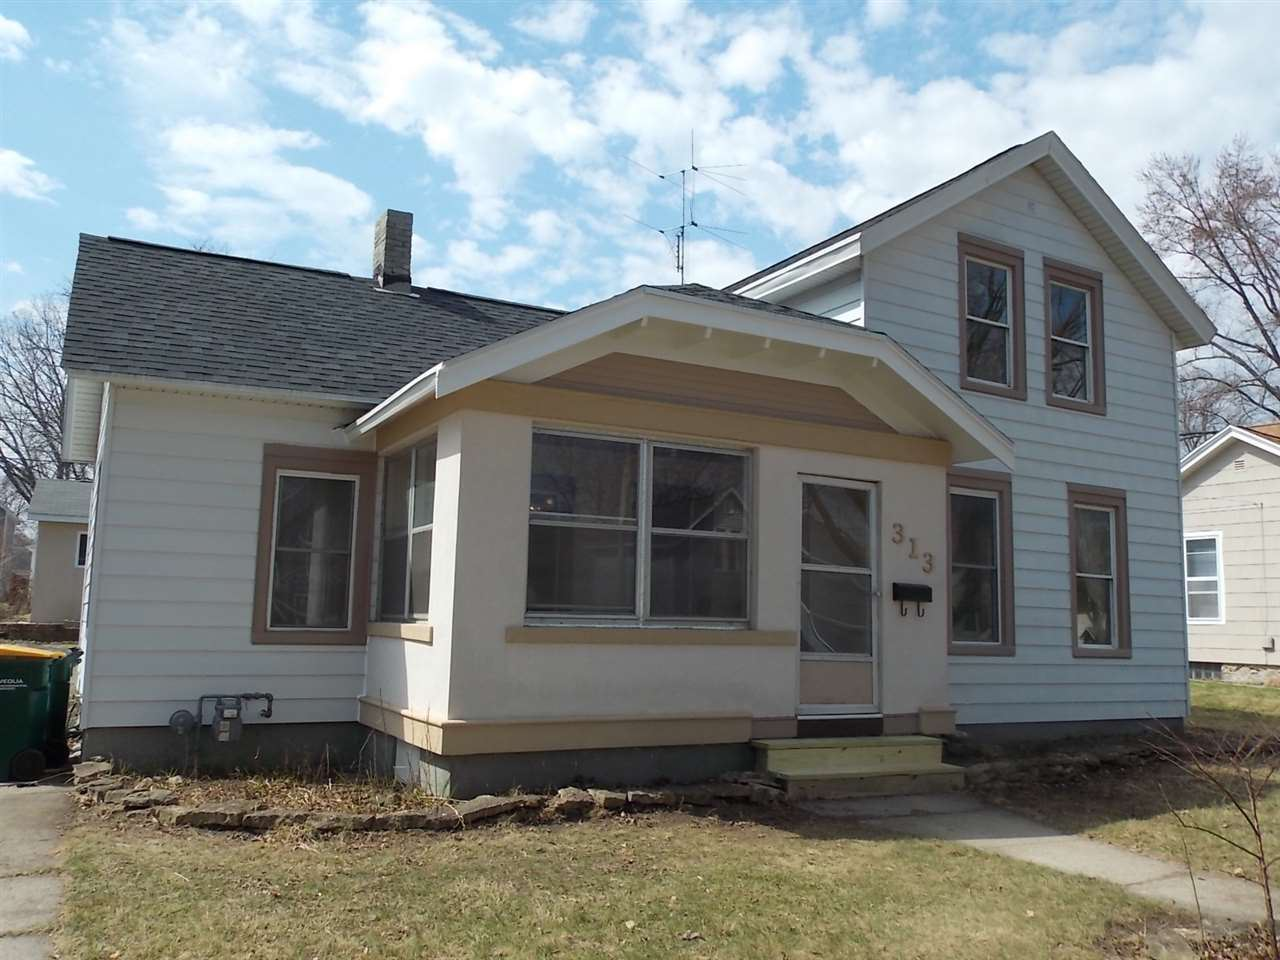 313 Lincoln St, Fort Atkinson, WI 53538 - #: 1880667